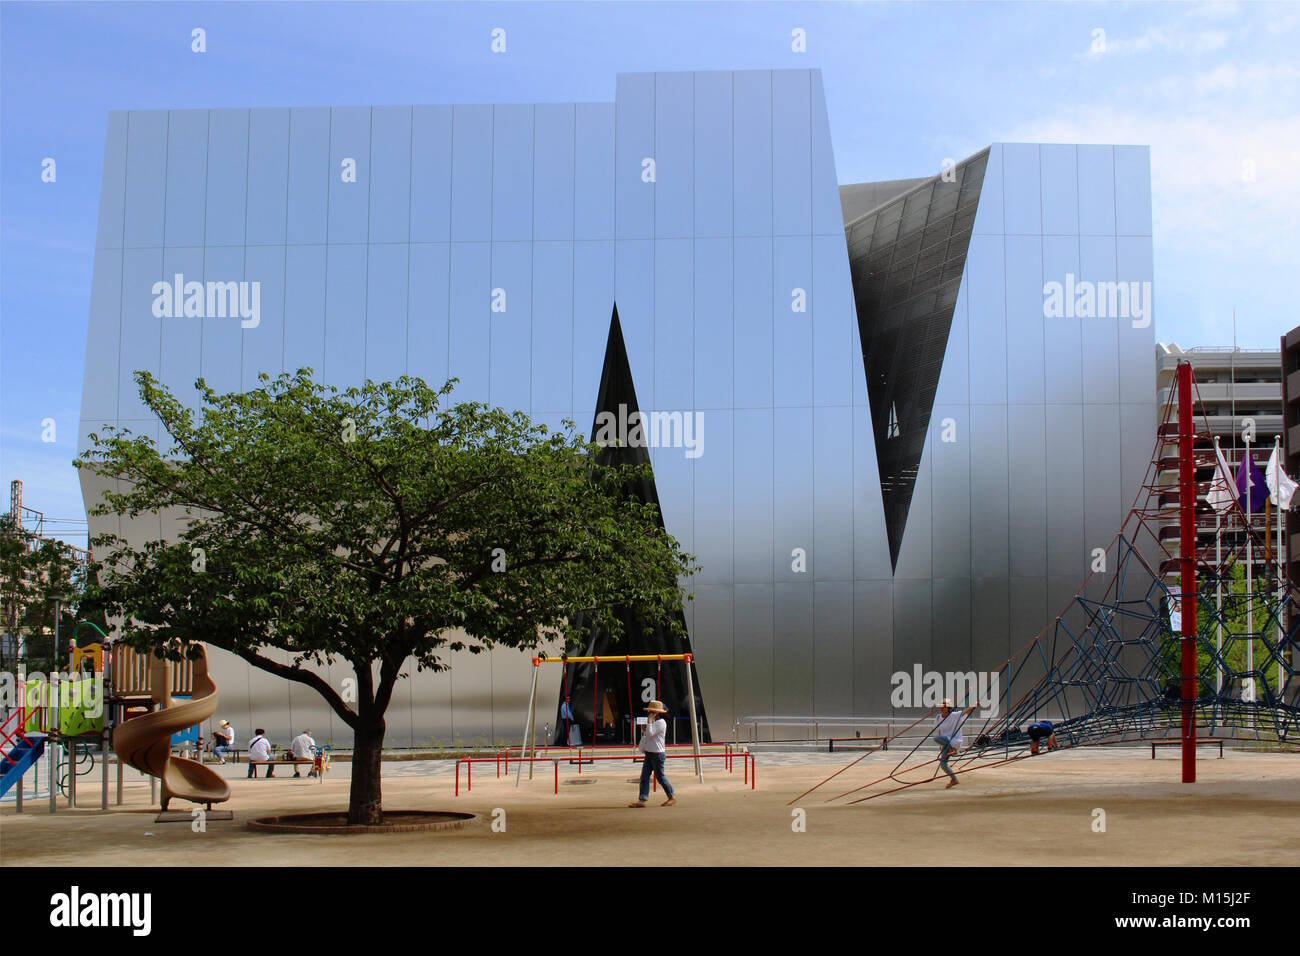 View of the Kazuyo Sejima-designed Sumida Hokusai Museum which is located in central Tokyo. Photo taken June 2017. - Stock Image